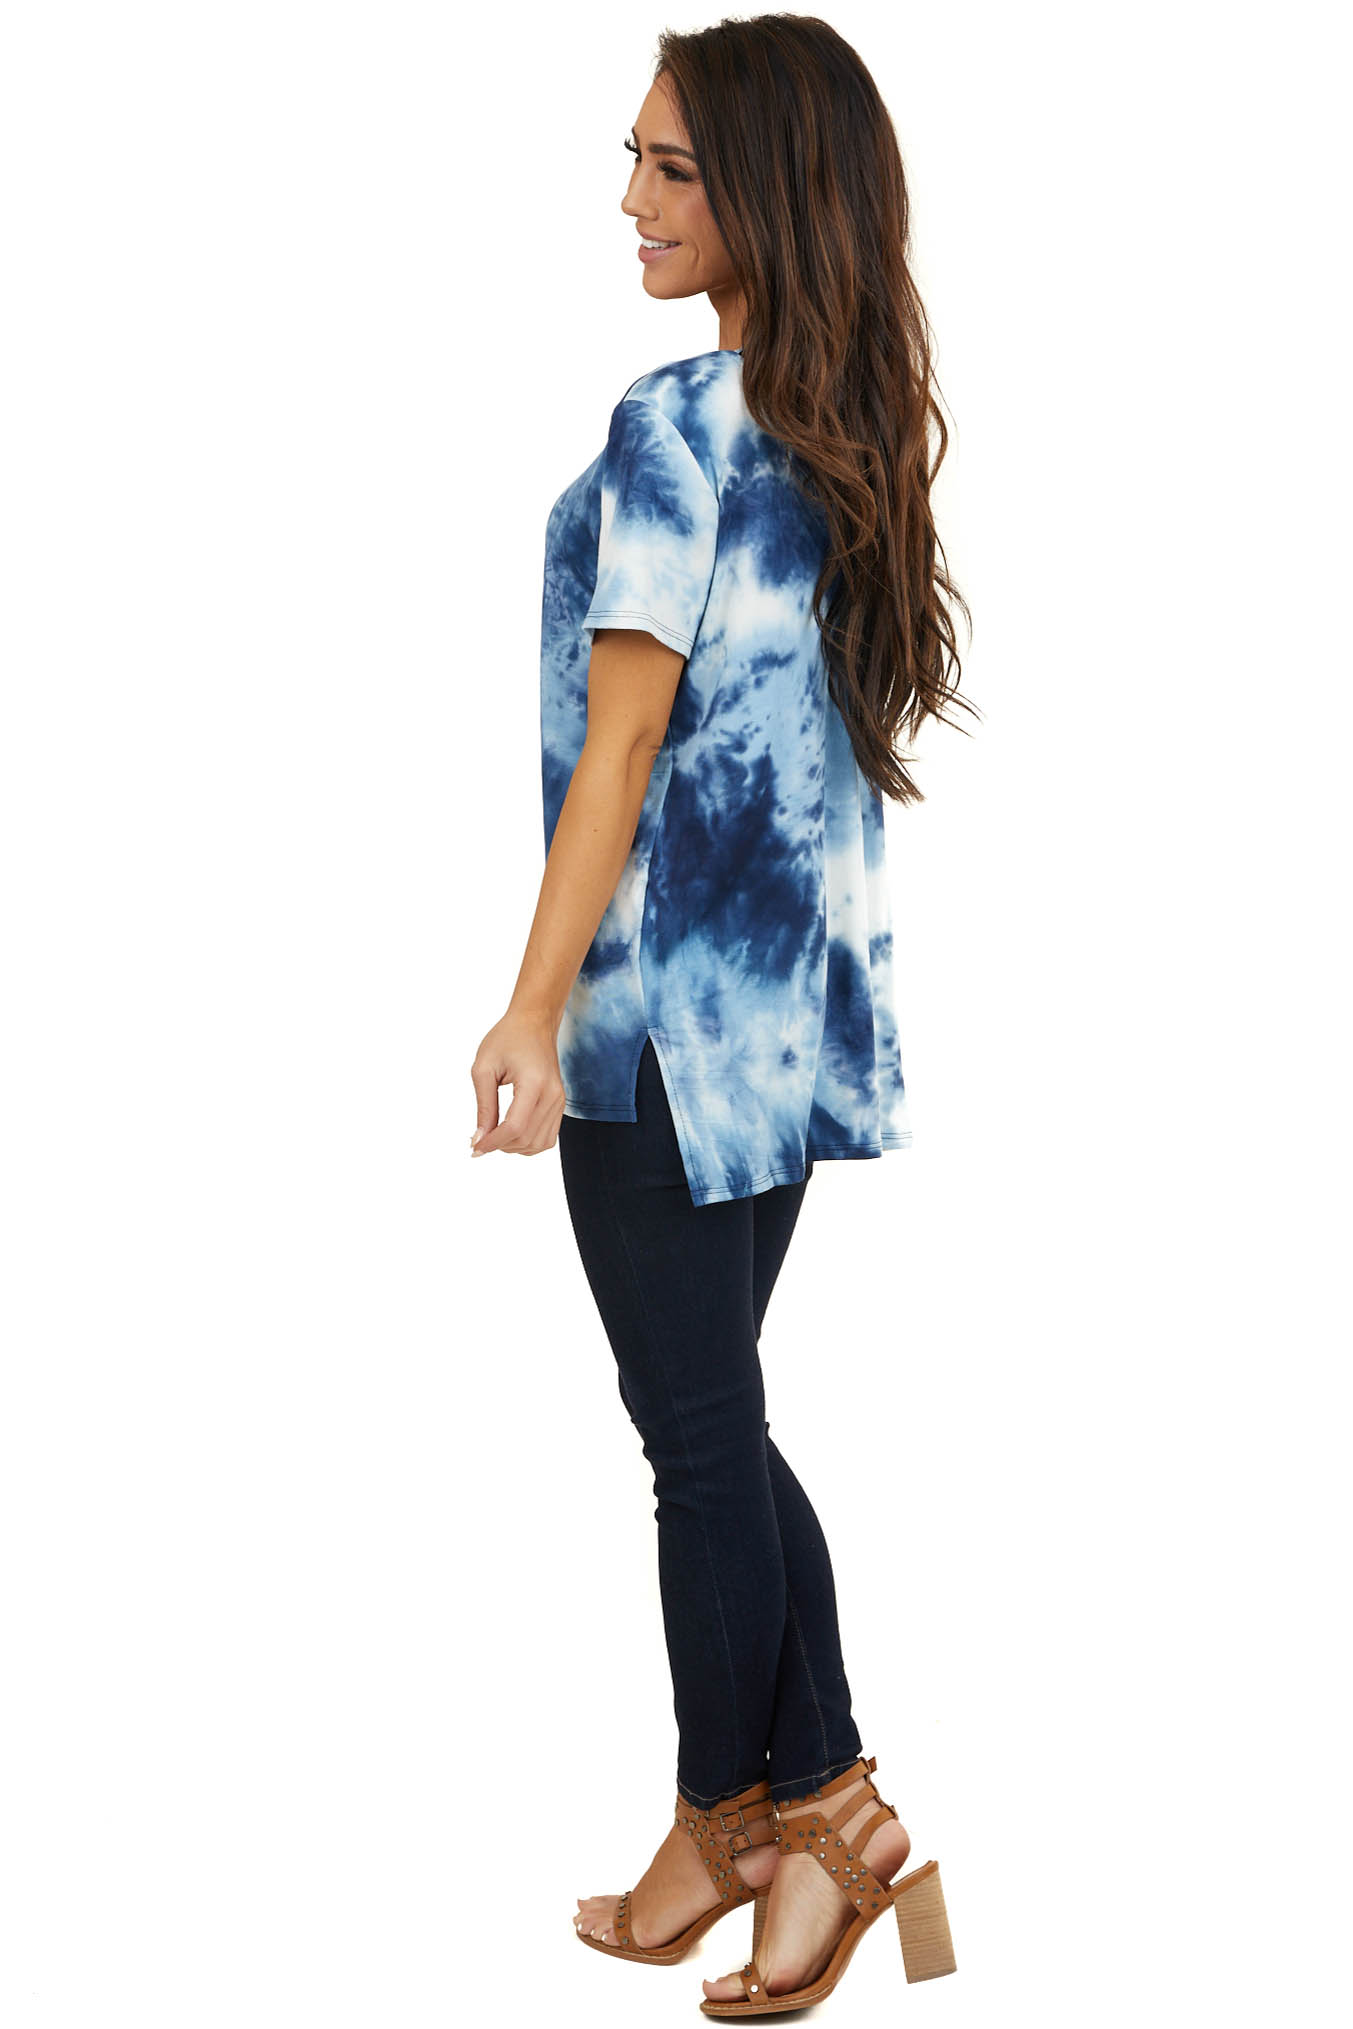 Blue Tie Dye Short Sleeve Knit Top with Cutout Details